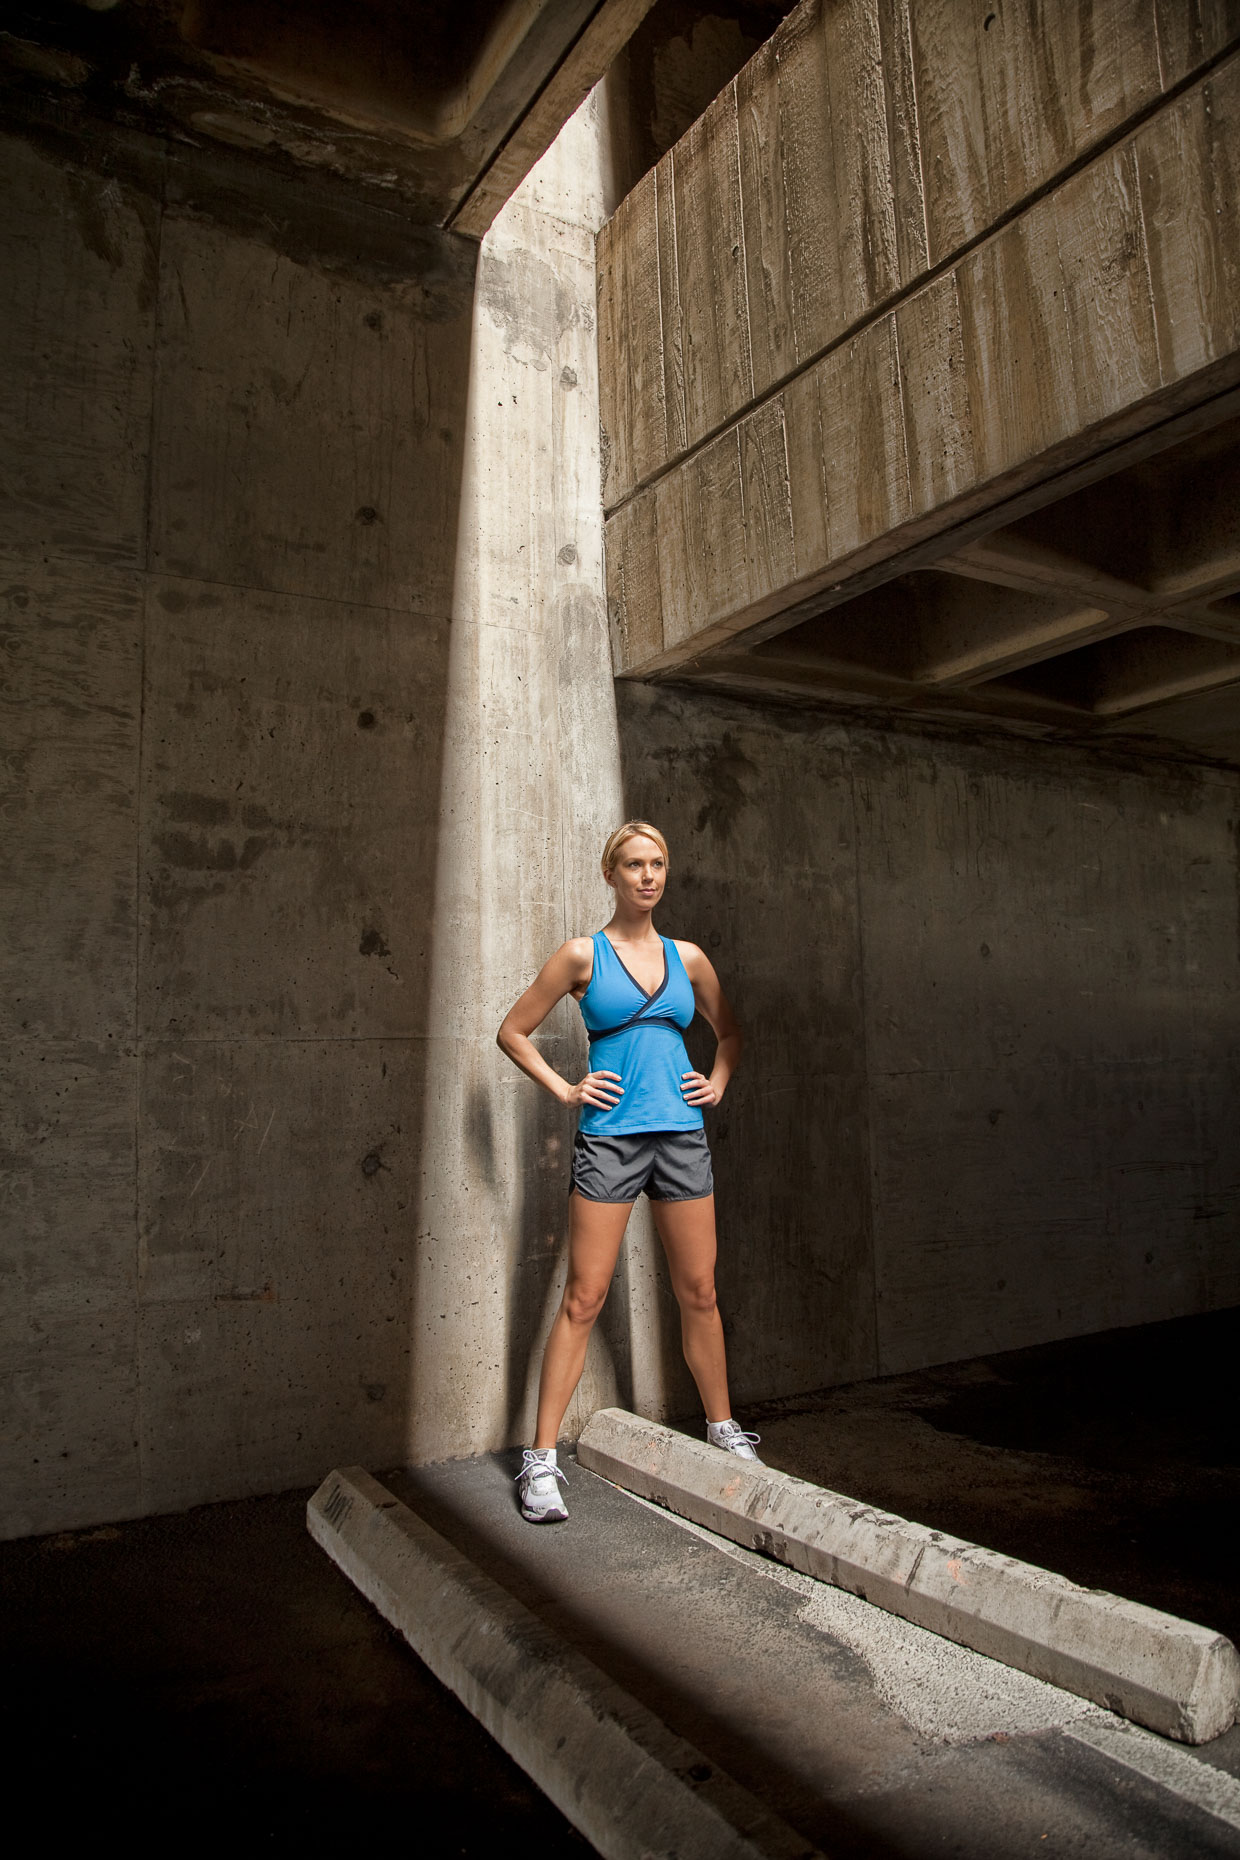 Woman in running clothing resting in shaft of light in parking garage by David Zaitz